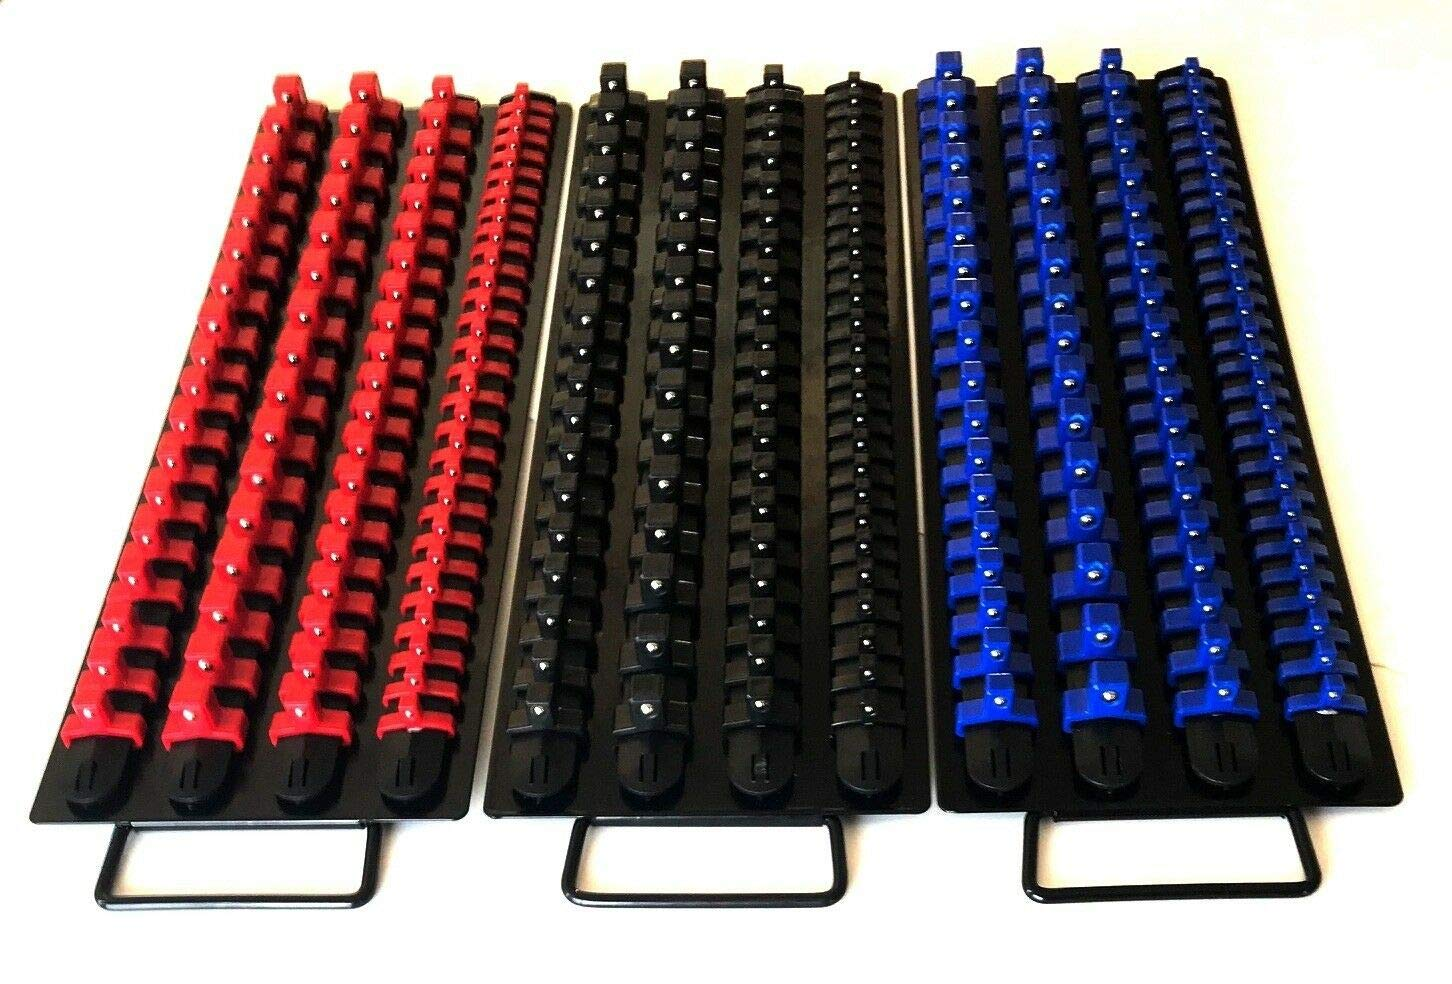 240pc SOCKET STORAGE TRAY RAIL RACK HOLDER SET 1/4 3/8 1/2 RED BLACK BLUE 17-1/2'' LONG 3 TOTAL TRAYS 6'' WIDE by shueysales (Image #1)